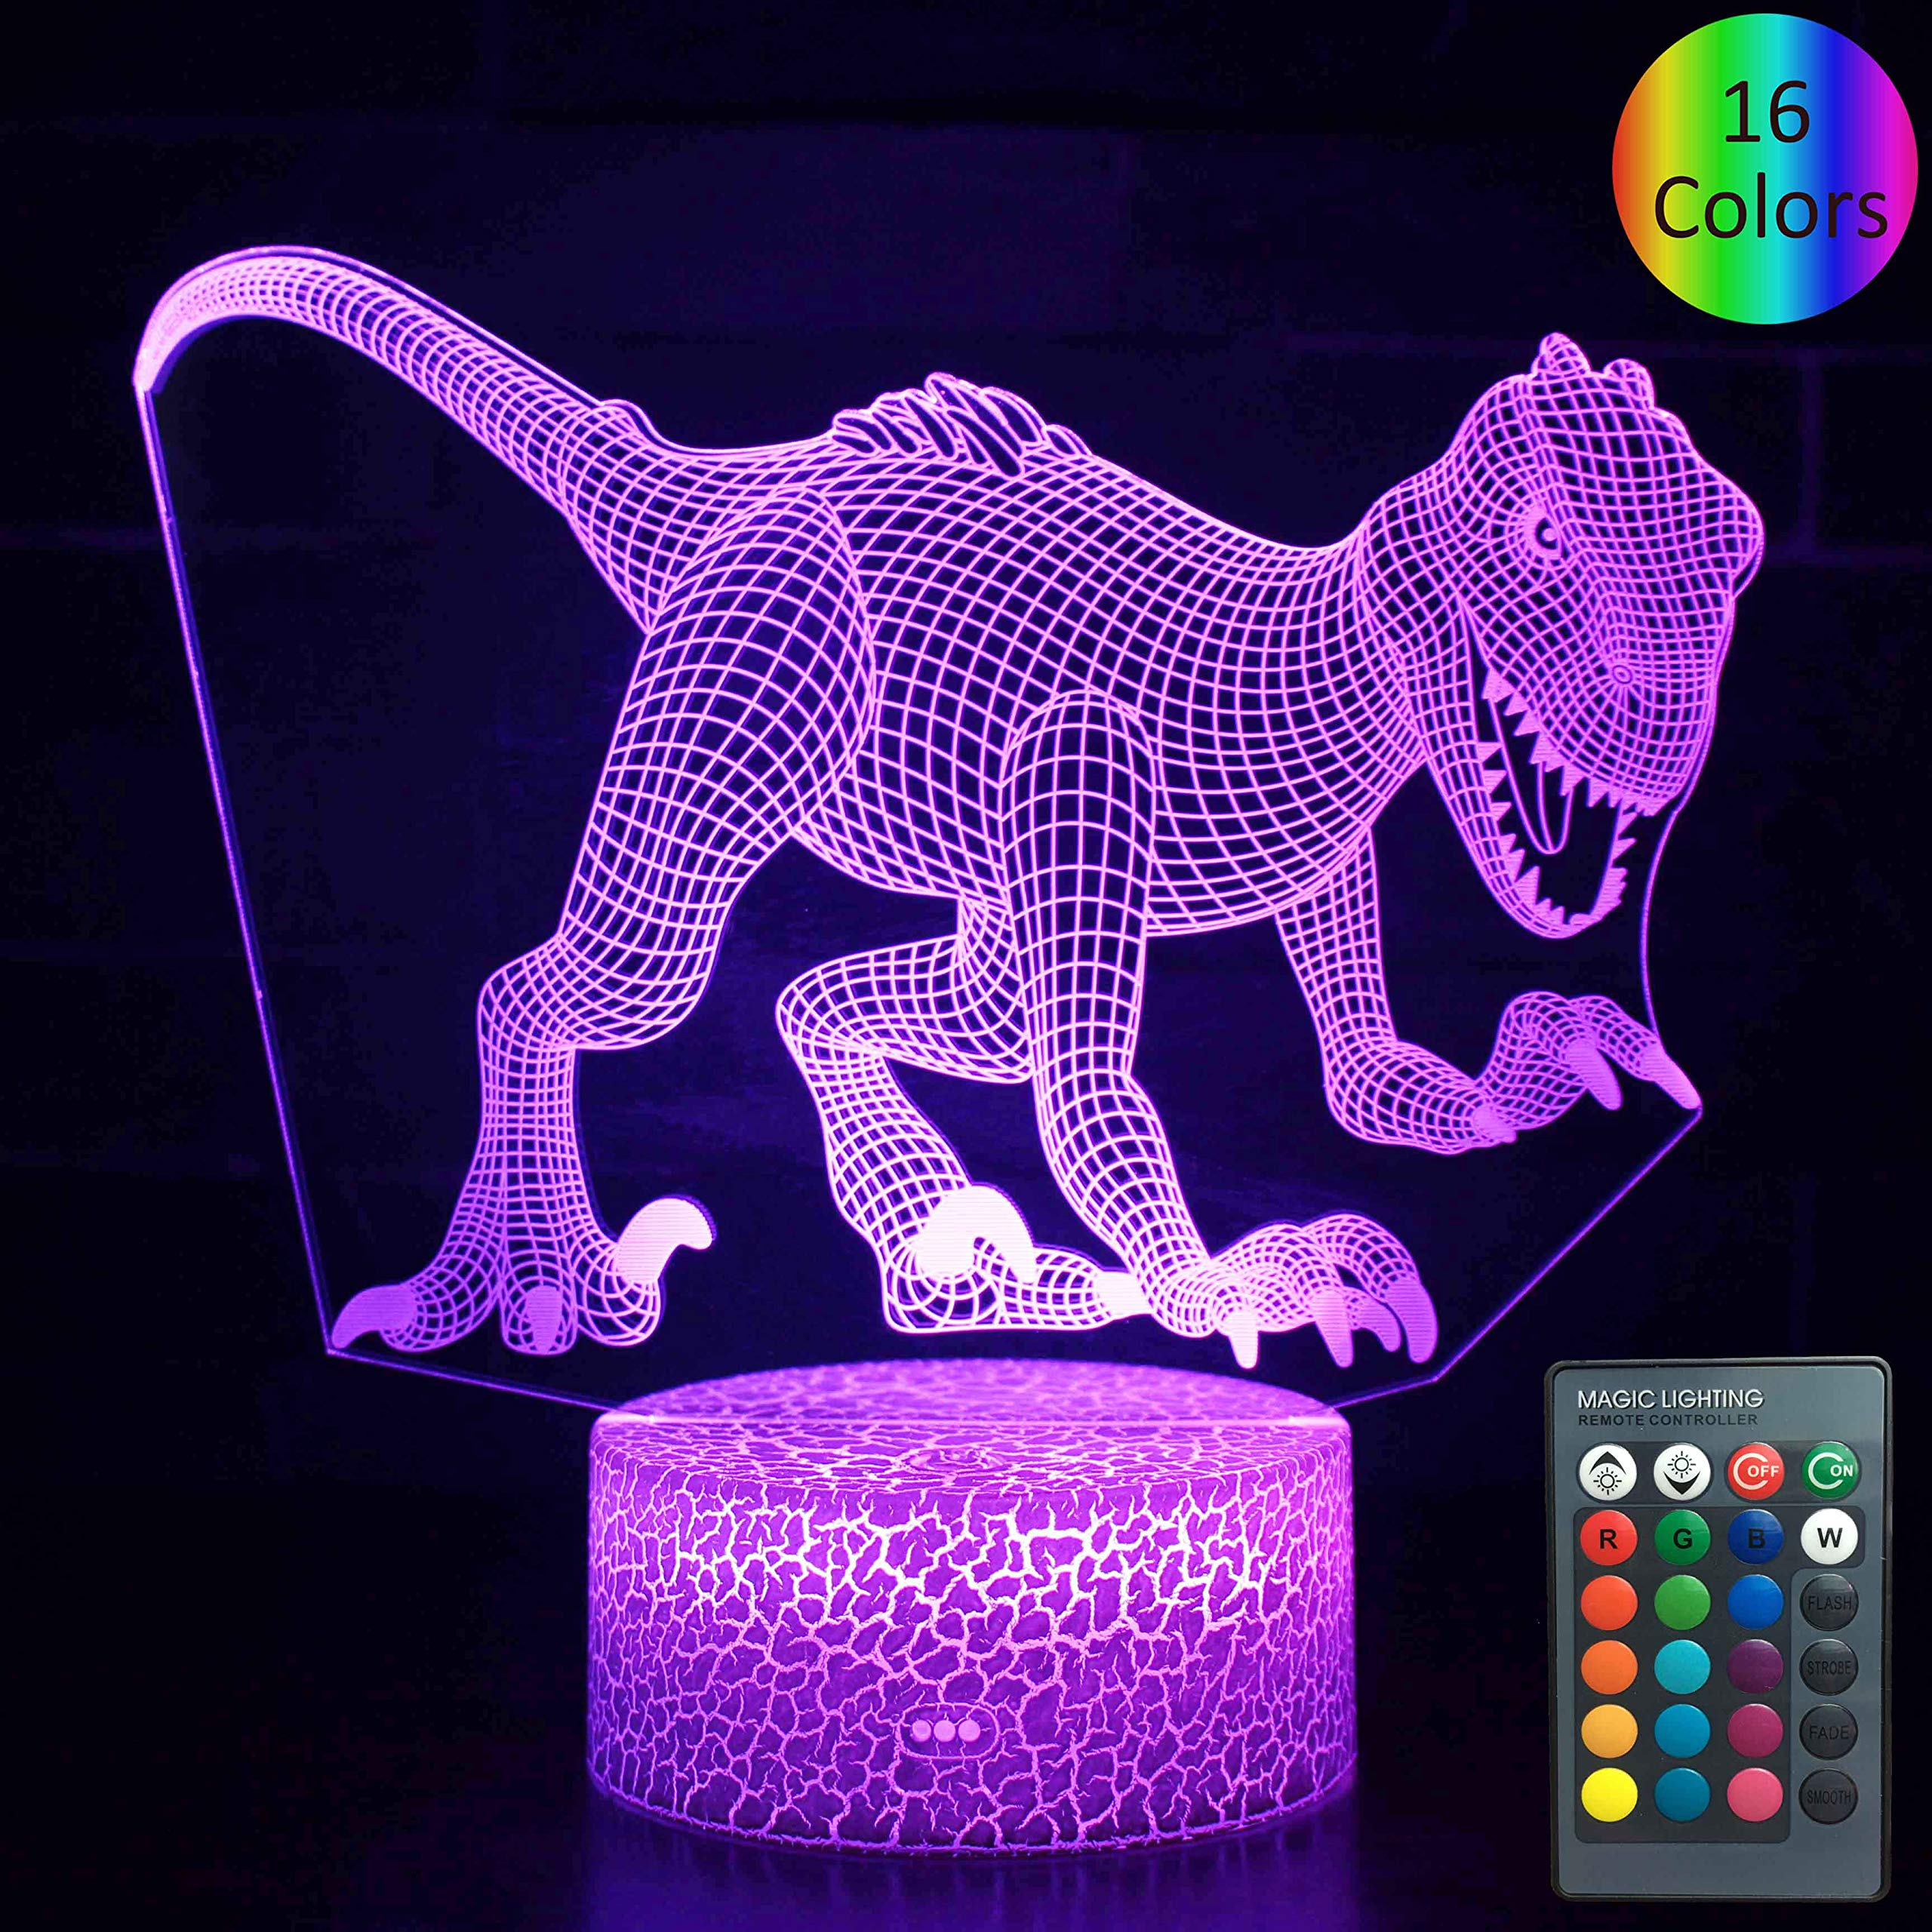 Party BAIHUAXIN Car Auto Ceiling Projector Star Decorative Light USB Night Light Sky Projection Lamp Portable Atmosphere Decorations Lamp for Bedroom Camping Car